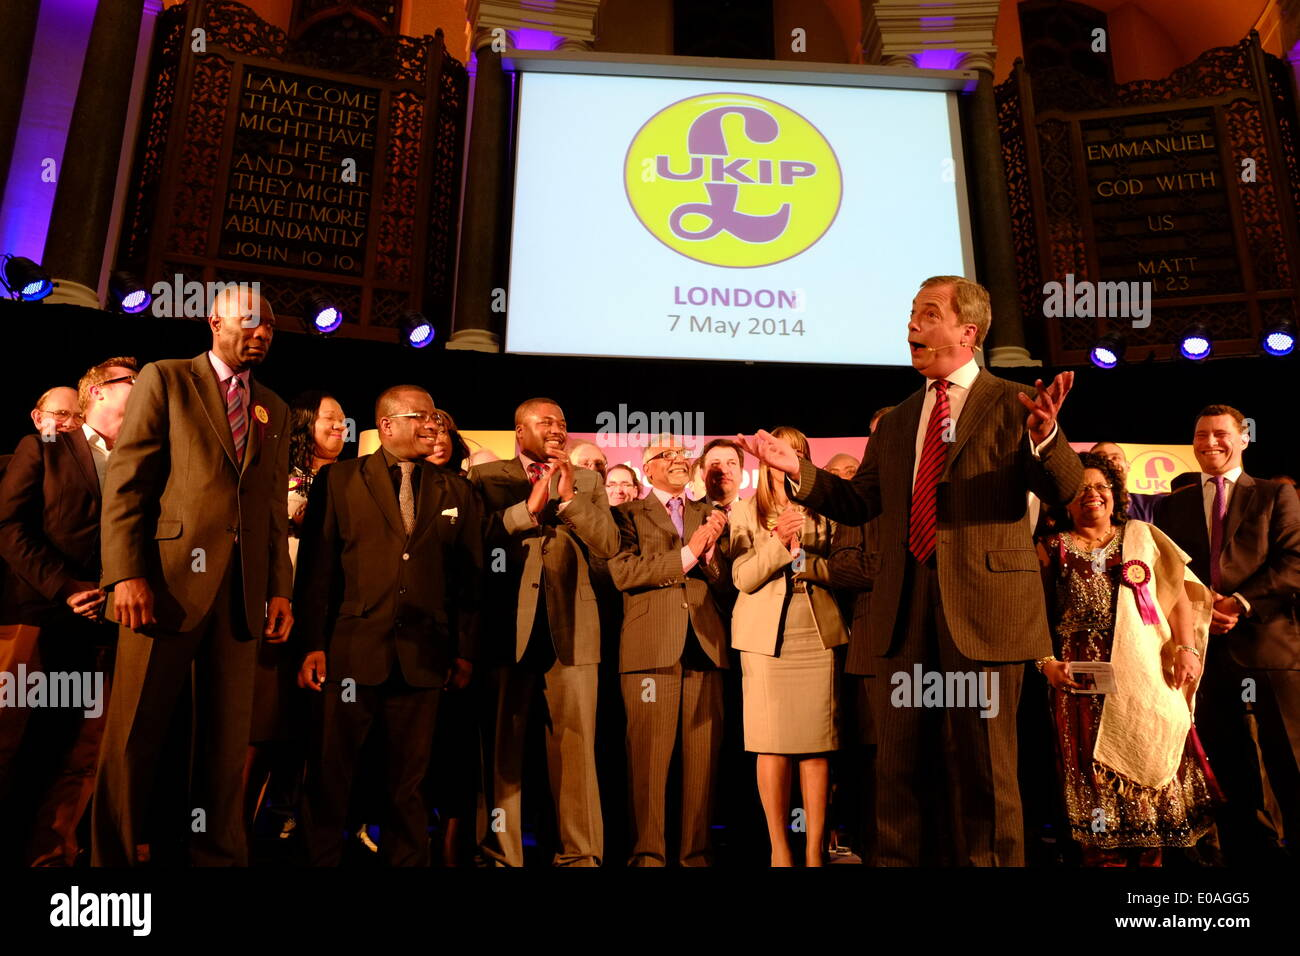 London, UK. 7th May 2014. Nigel Farage speaks at the final venue on the 'UKIP People's Army' tour on astage filled with party candidates Credit:  Rachel Megawhat/Alamy Live News - Stock Image